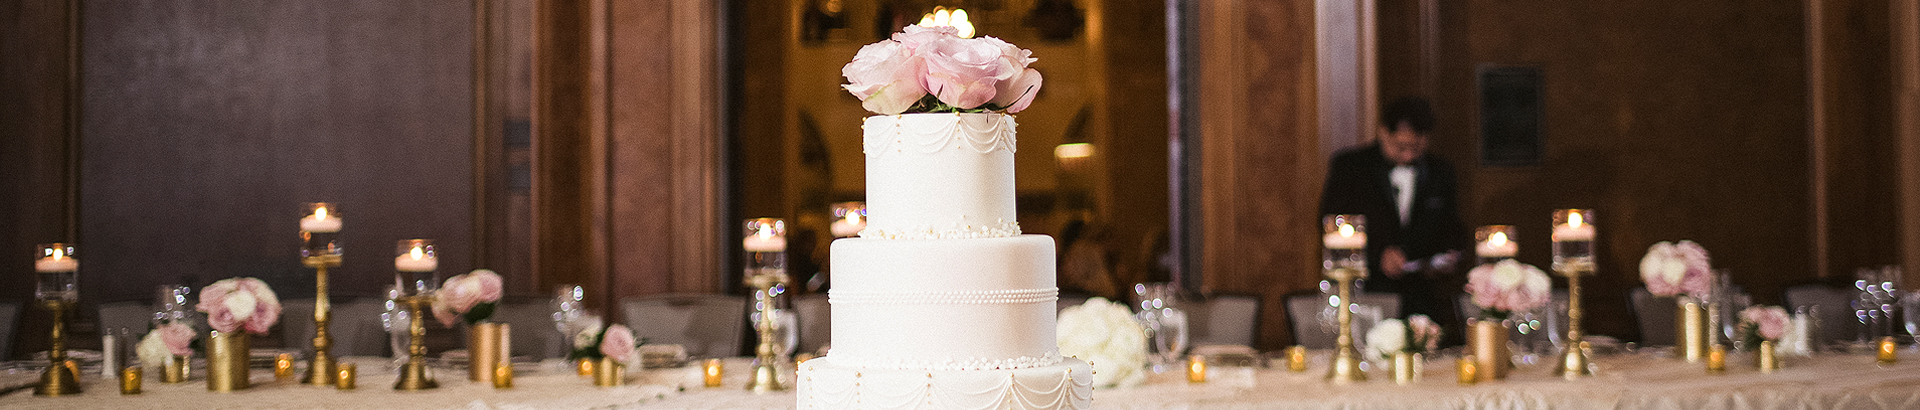 wedding cake in front of a large table